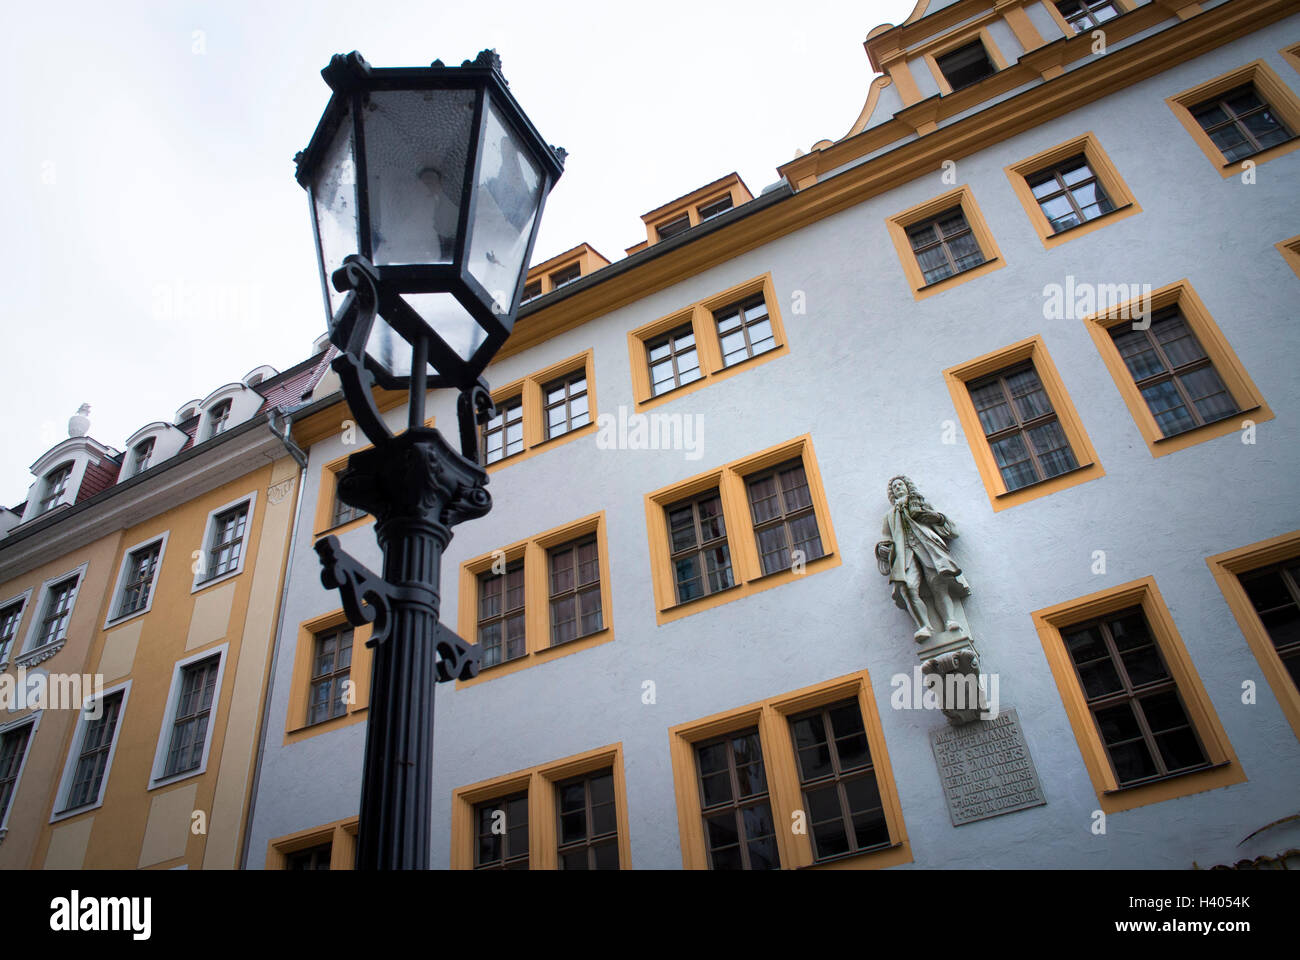 Statue to Matthäus Daniel Pöppelmann in Dresden old town, Germany. Stock Photo